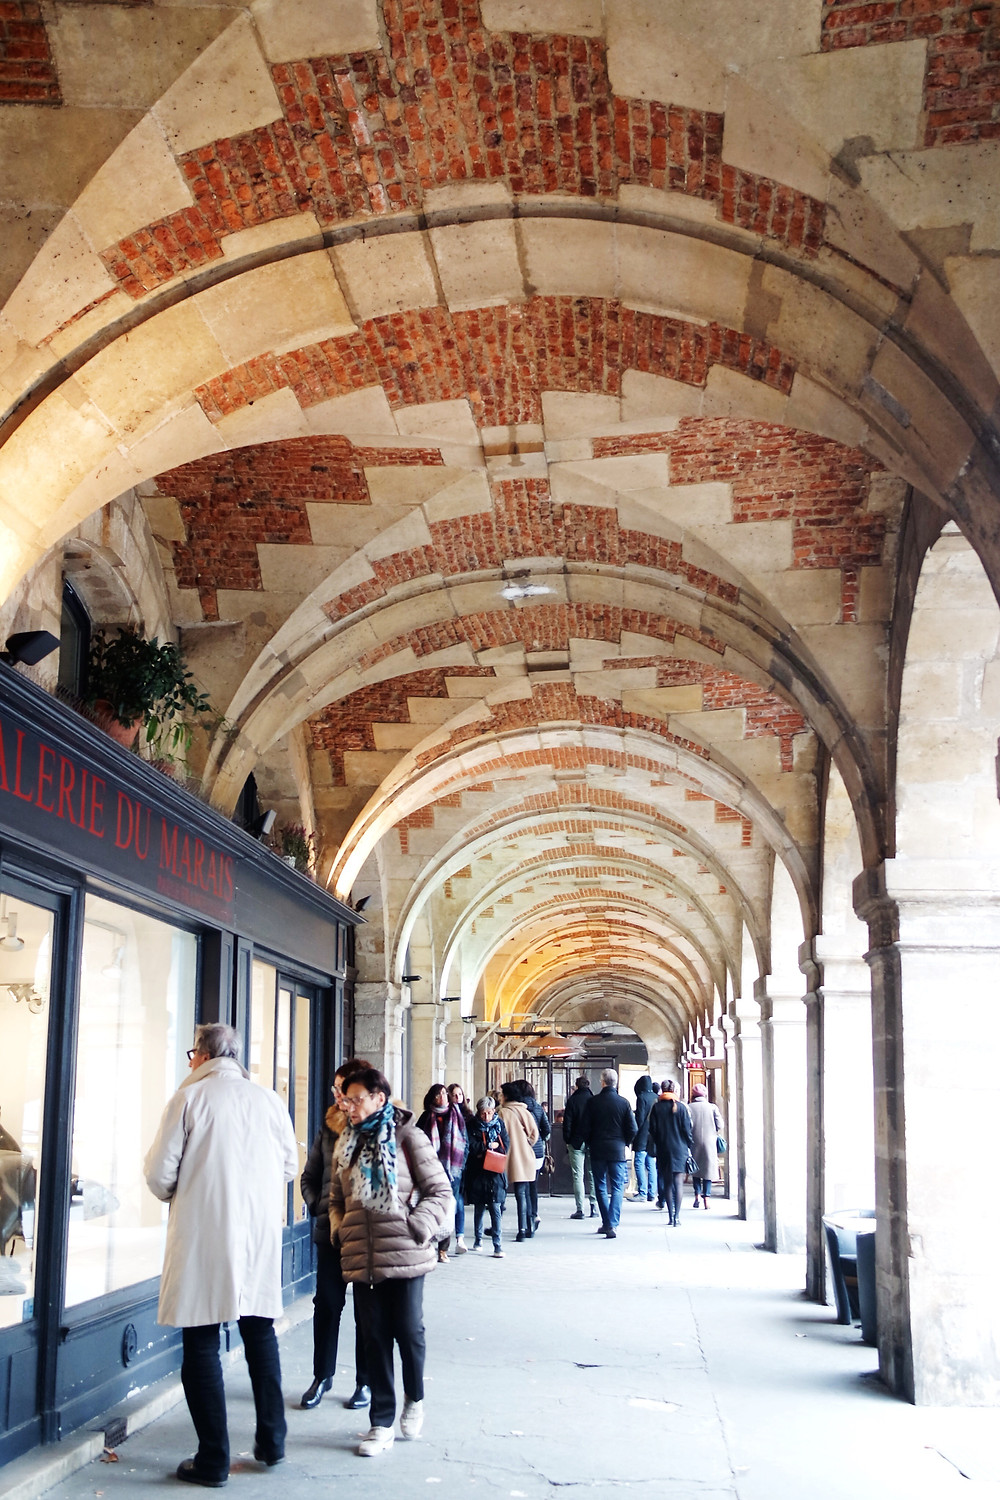 Place des Vosges covered arcade, with brick and stone vaults between the arches.